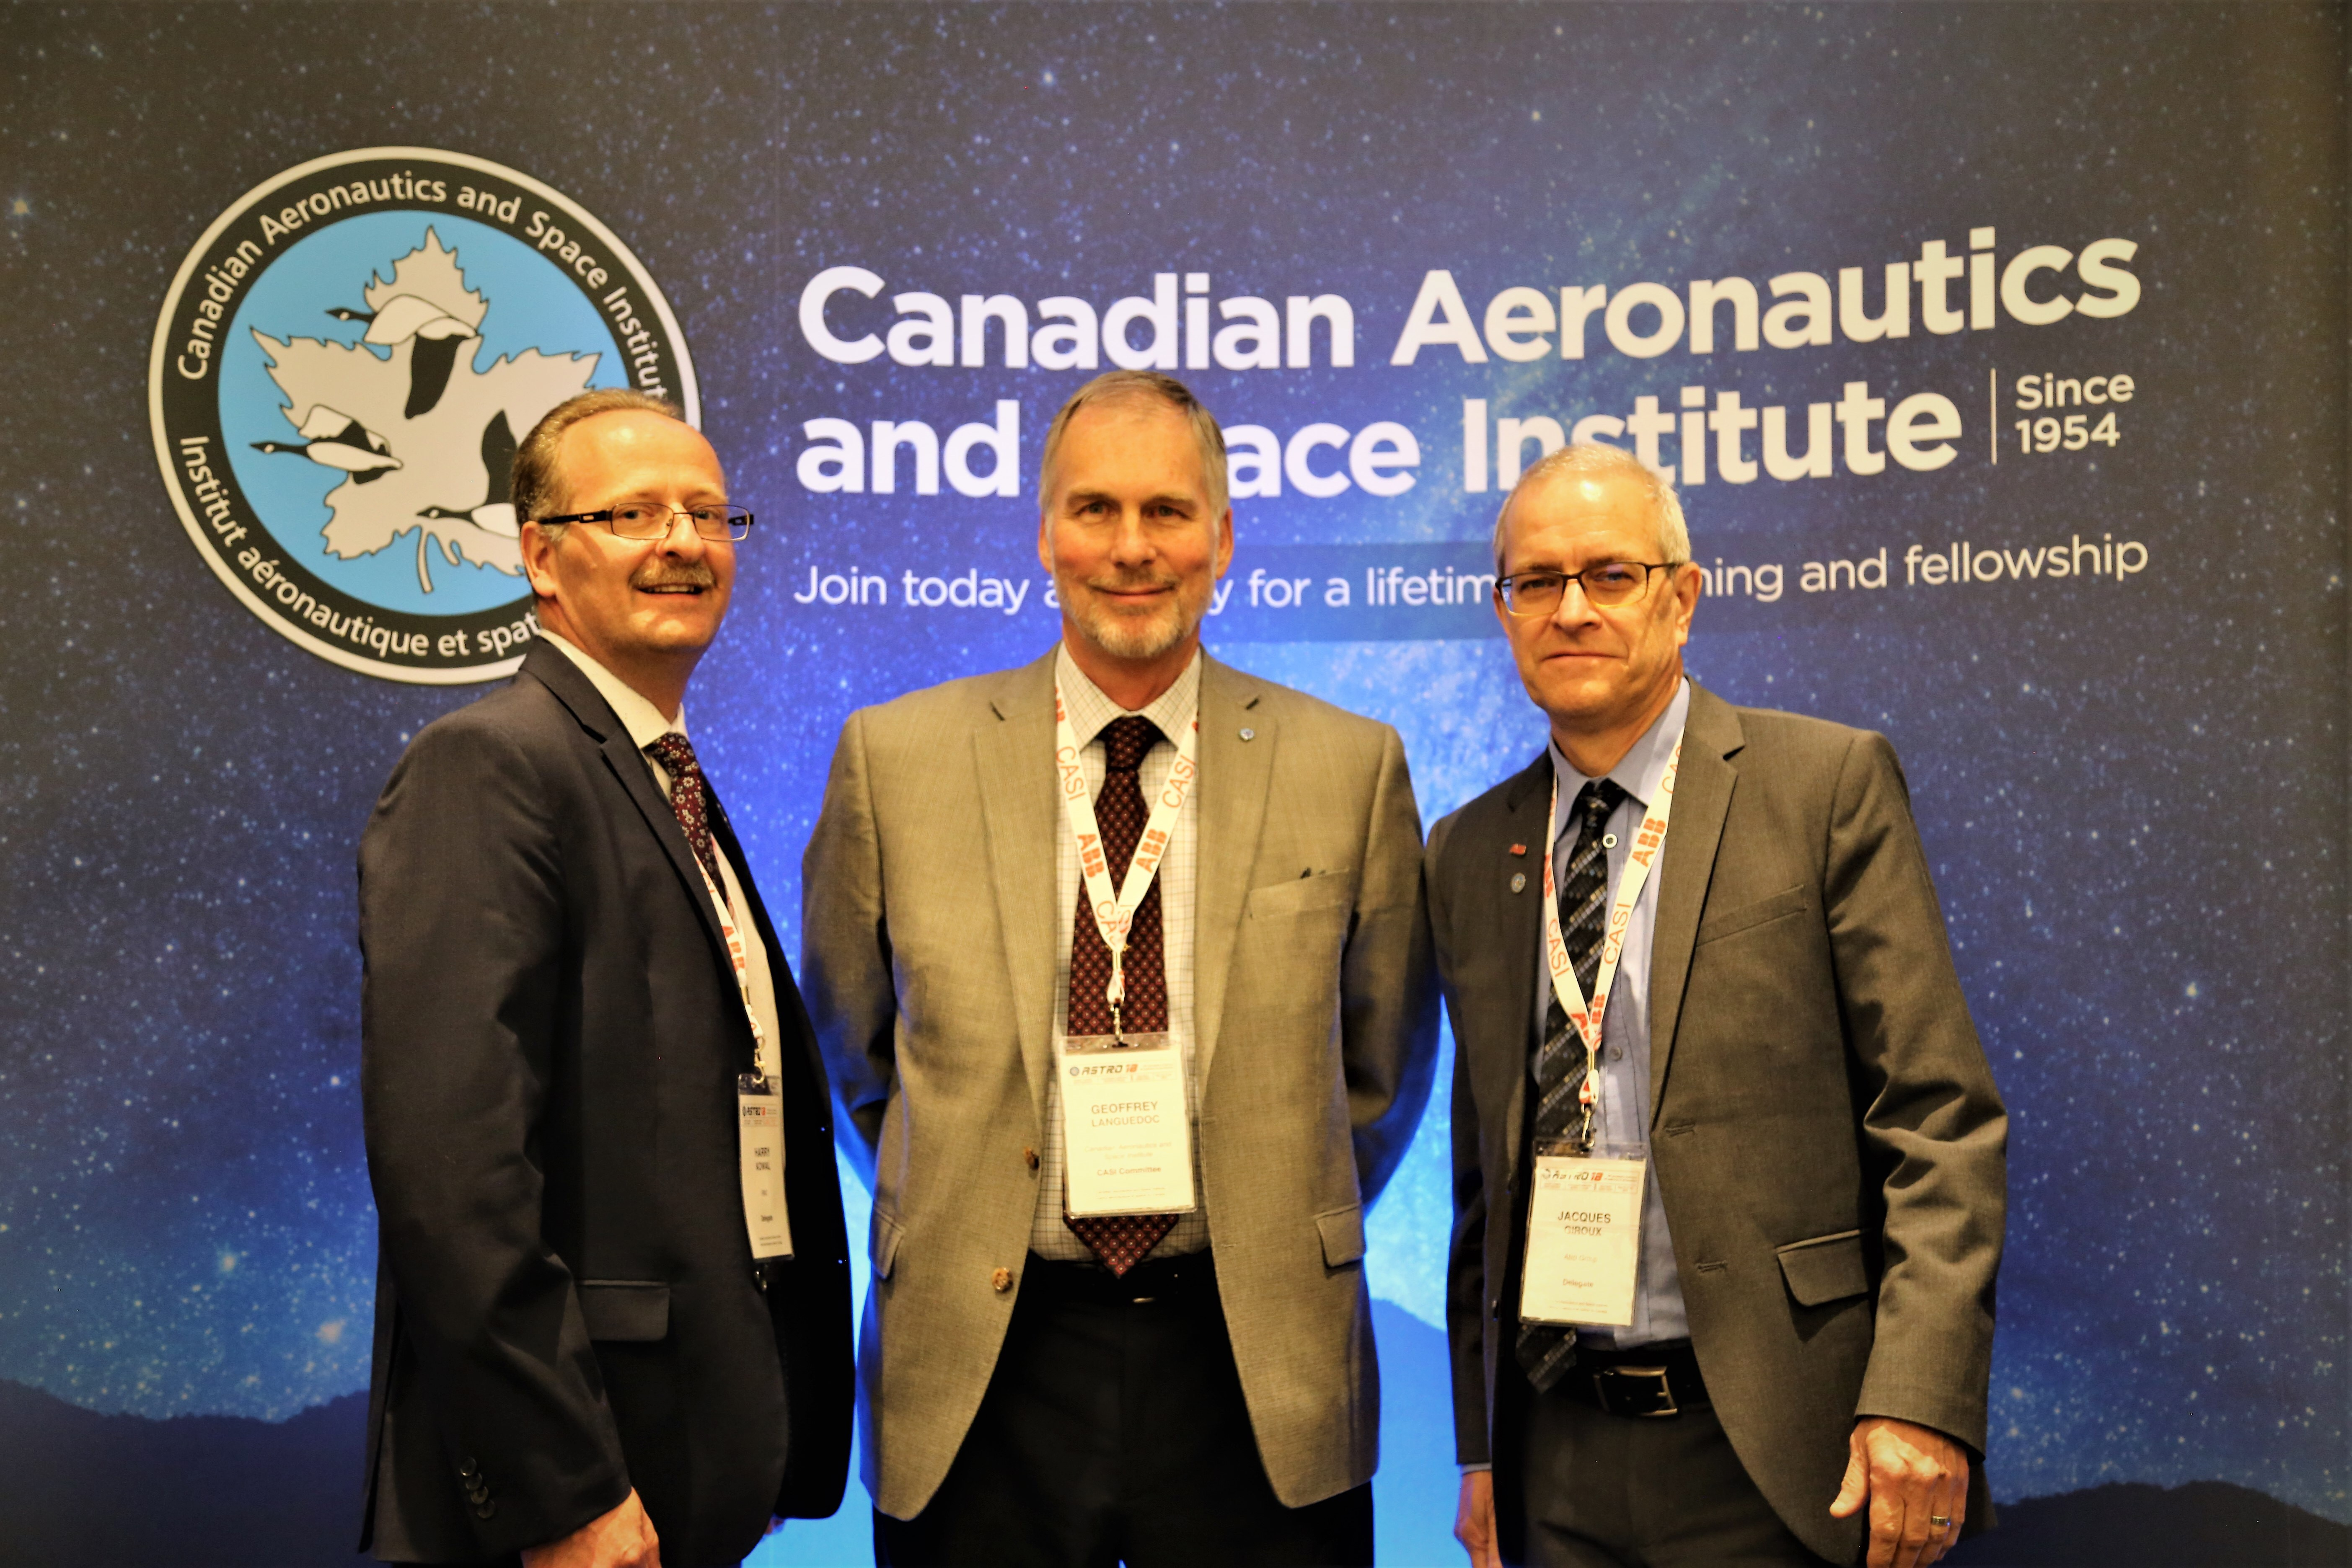 (L to R) Harry Kowal, Geoff Languedoc, Jacques Giroux